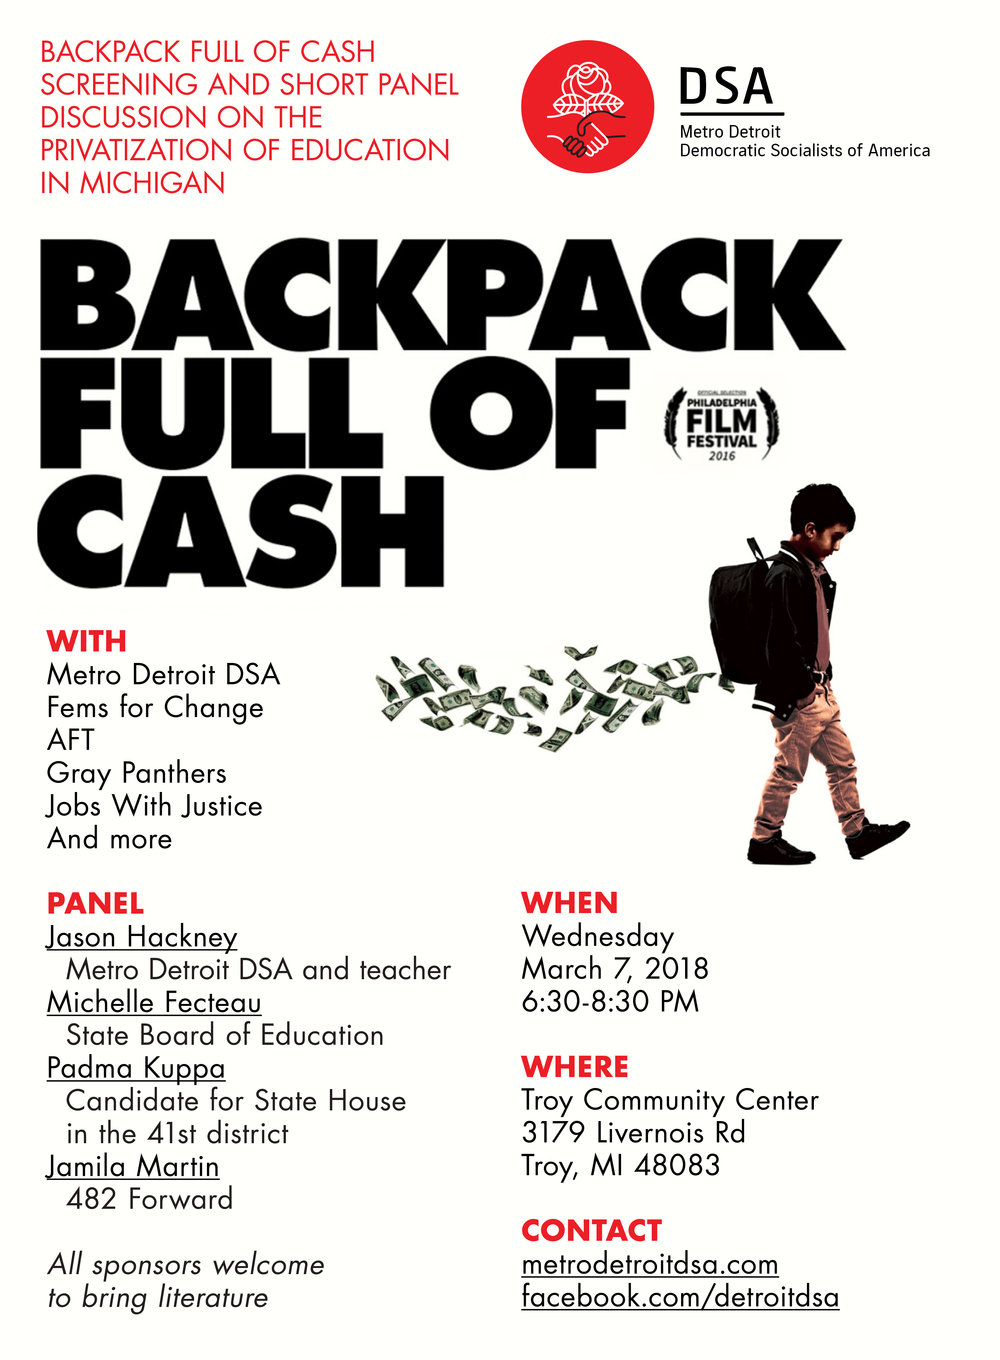 DDSA-BackpackFullofCashFlyer.jpg